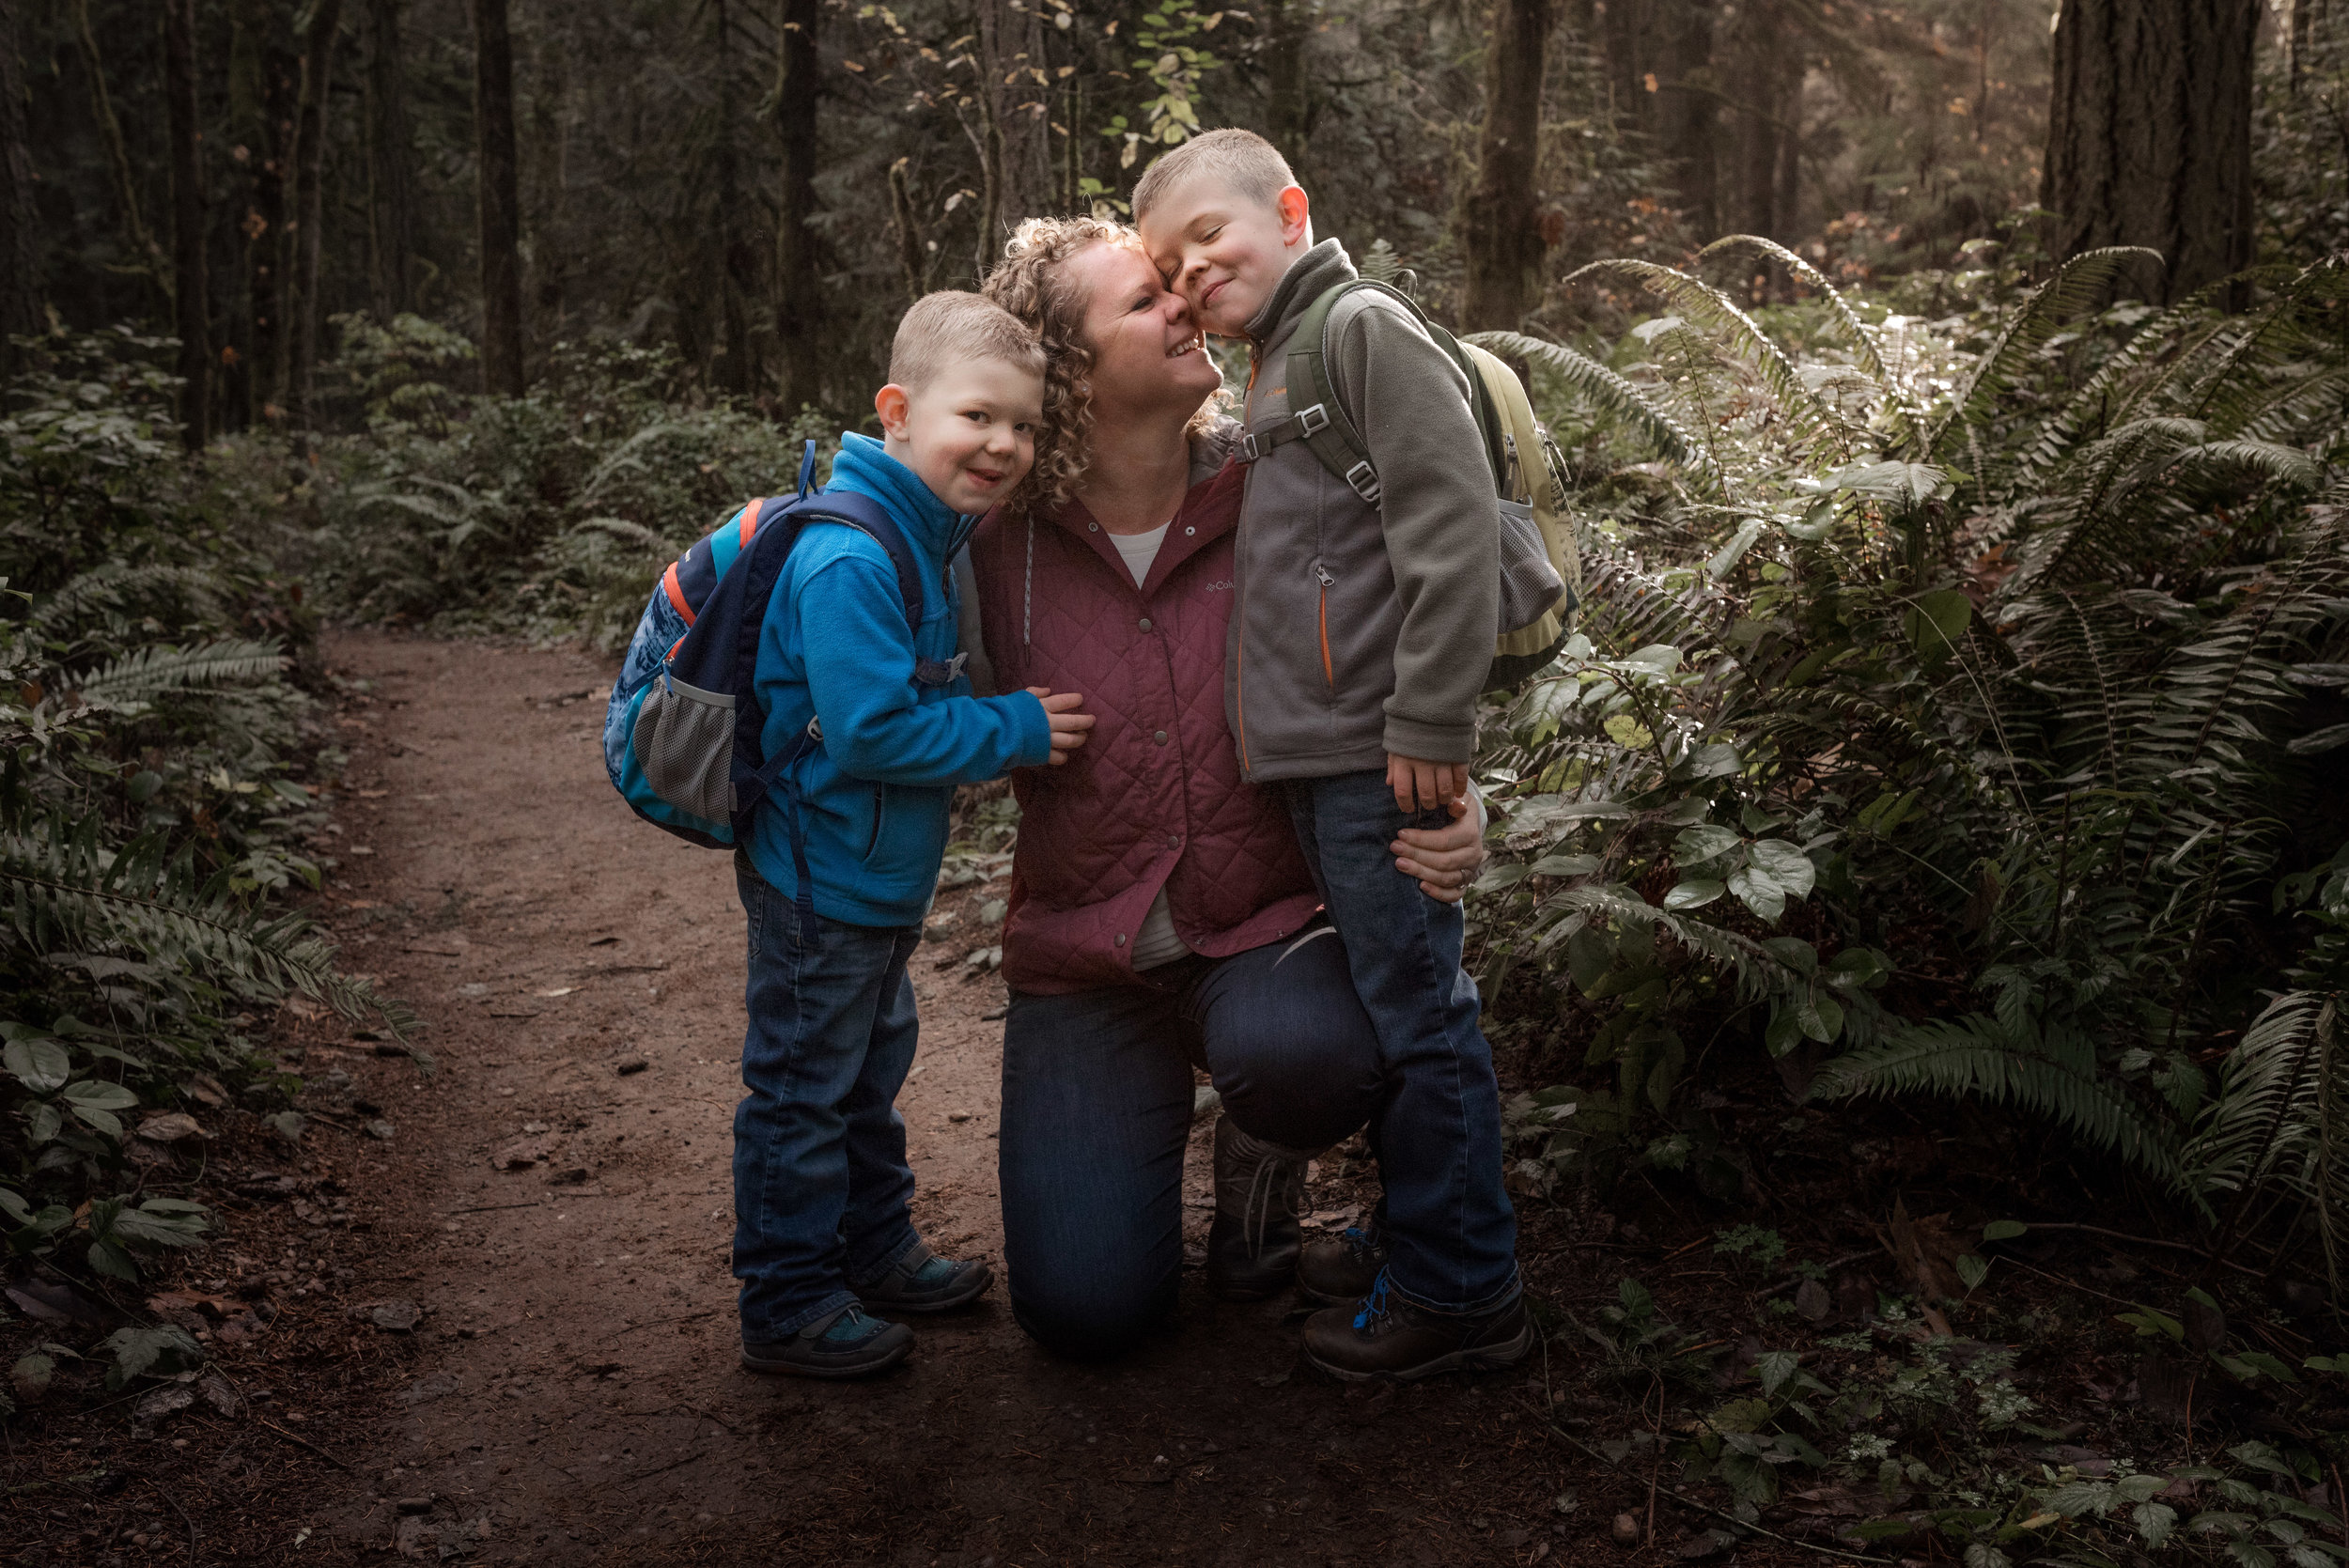 family photographer | bainbridge island | amy selleck photography